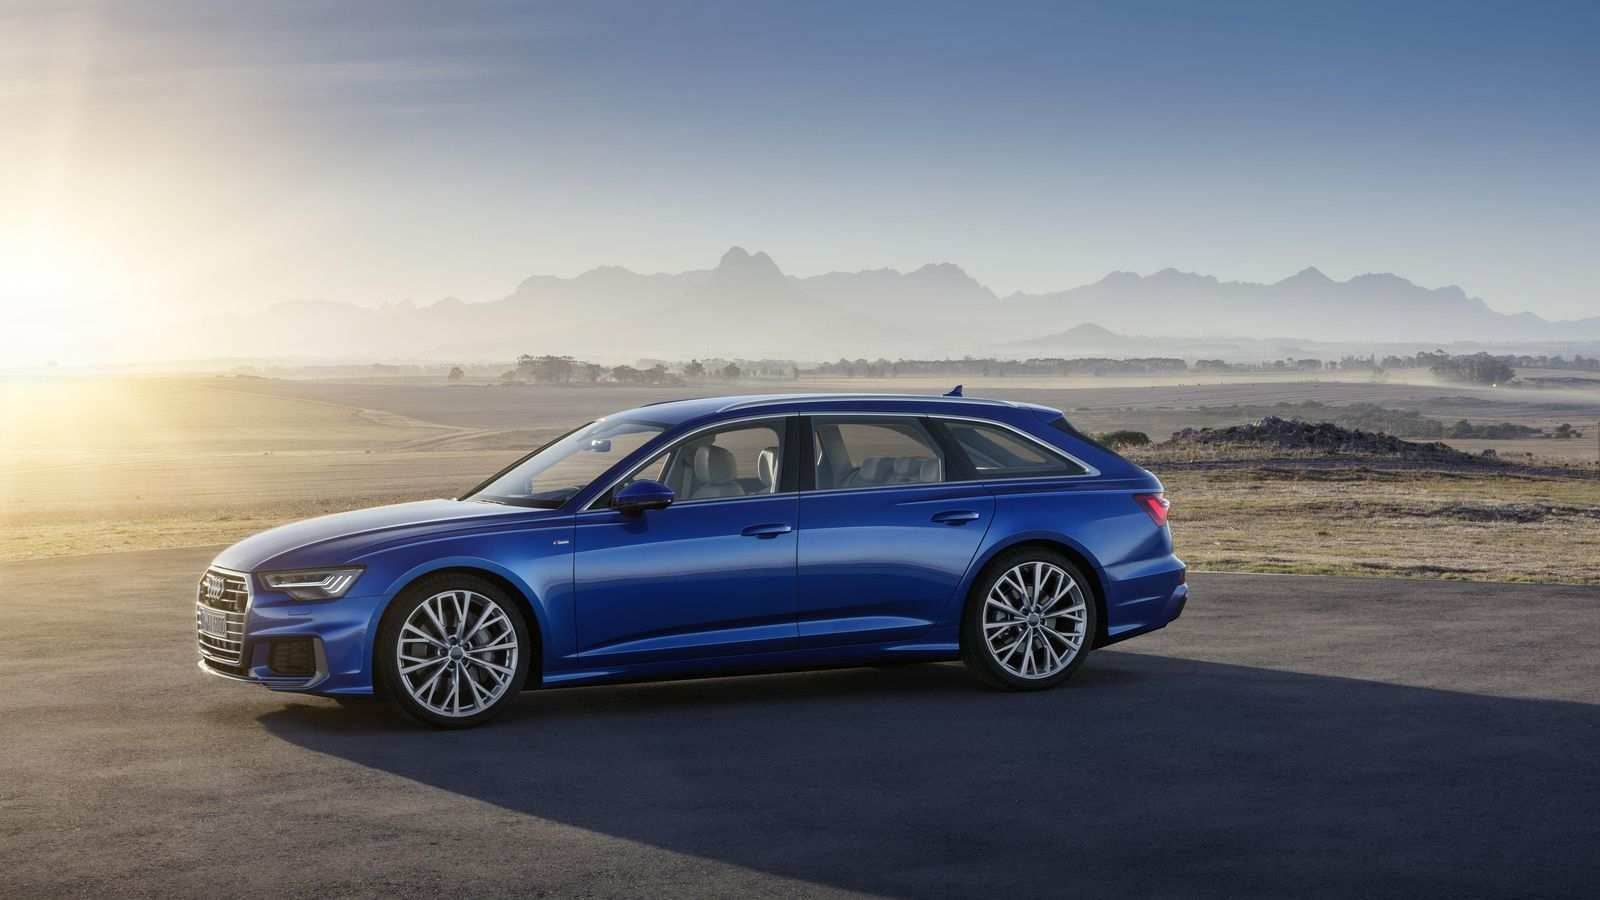 28 Gallery of 2019 Audi Wagon Usa Price with 2019 Audi Wagon Usa